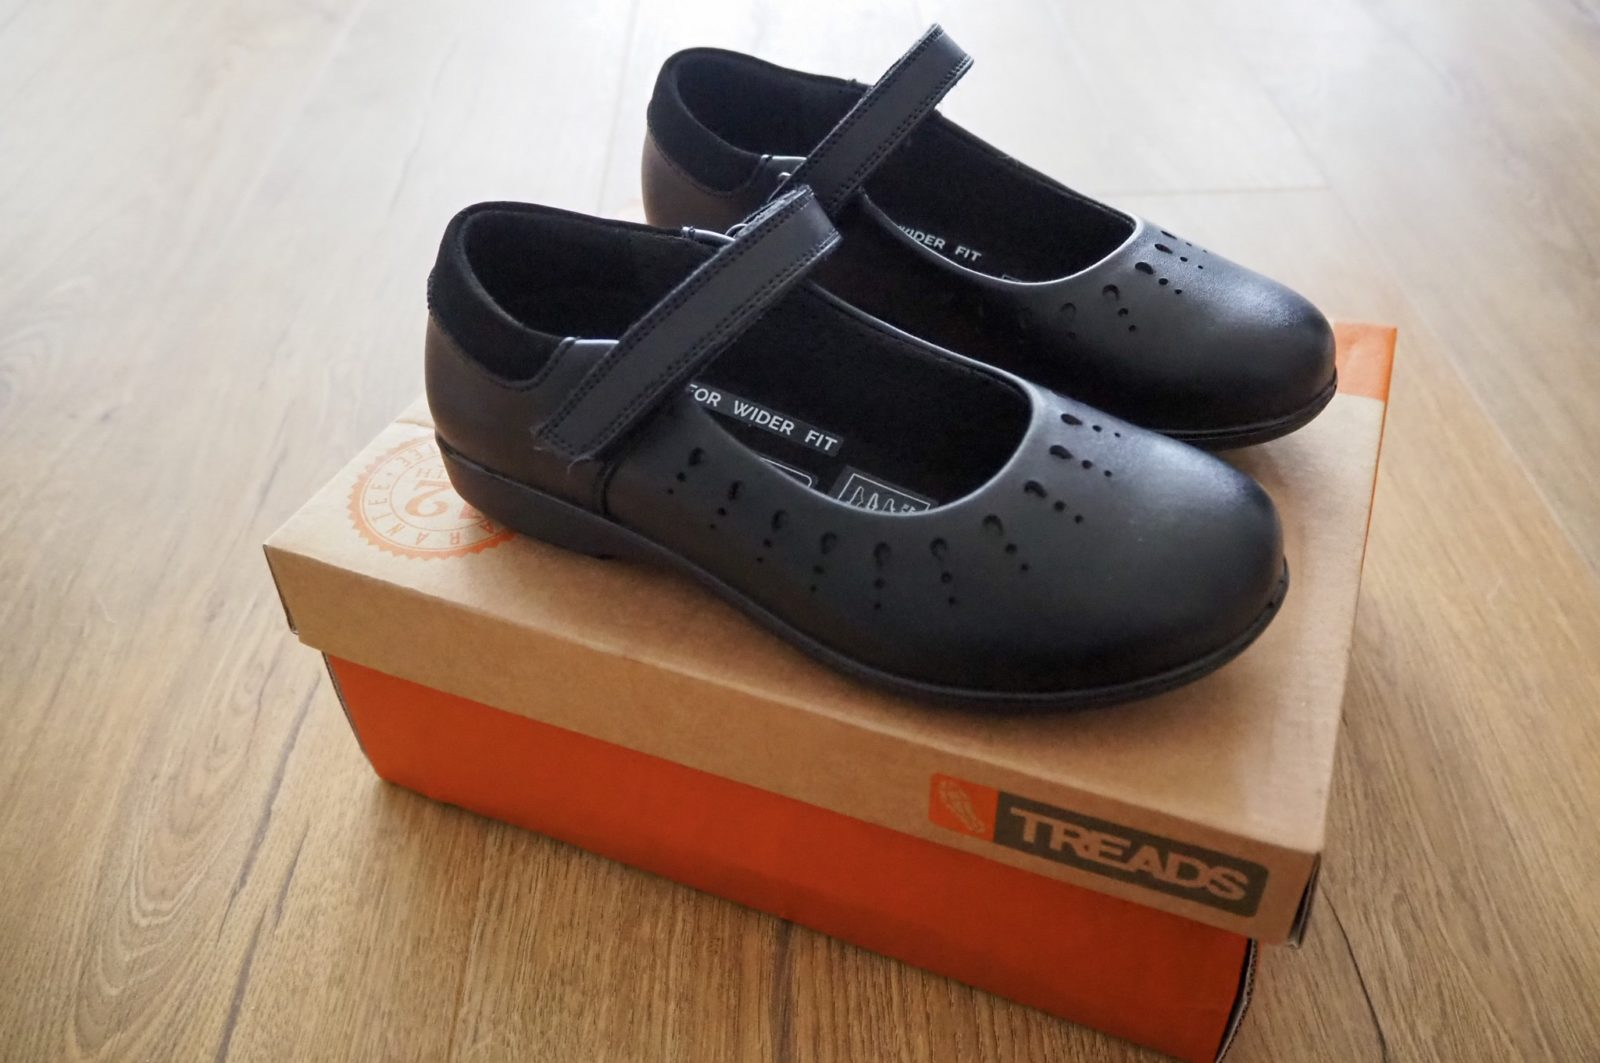 Back to school with Treads school shoes: review and giveaway